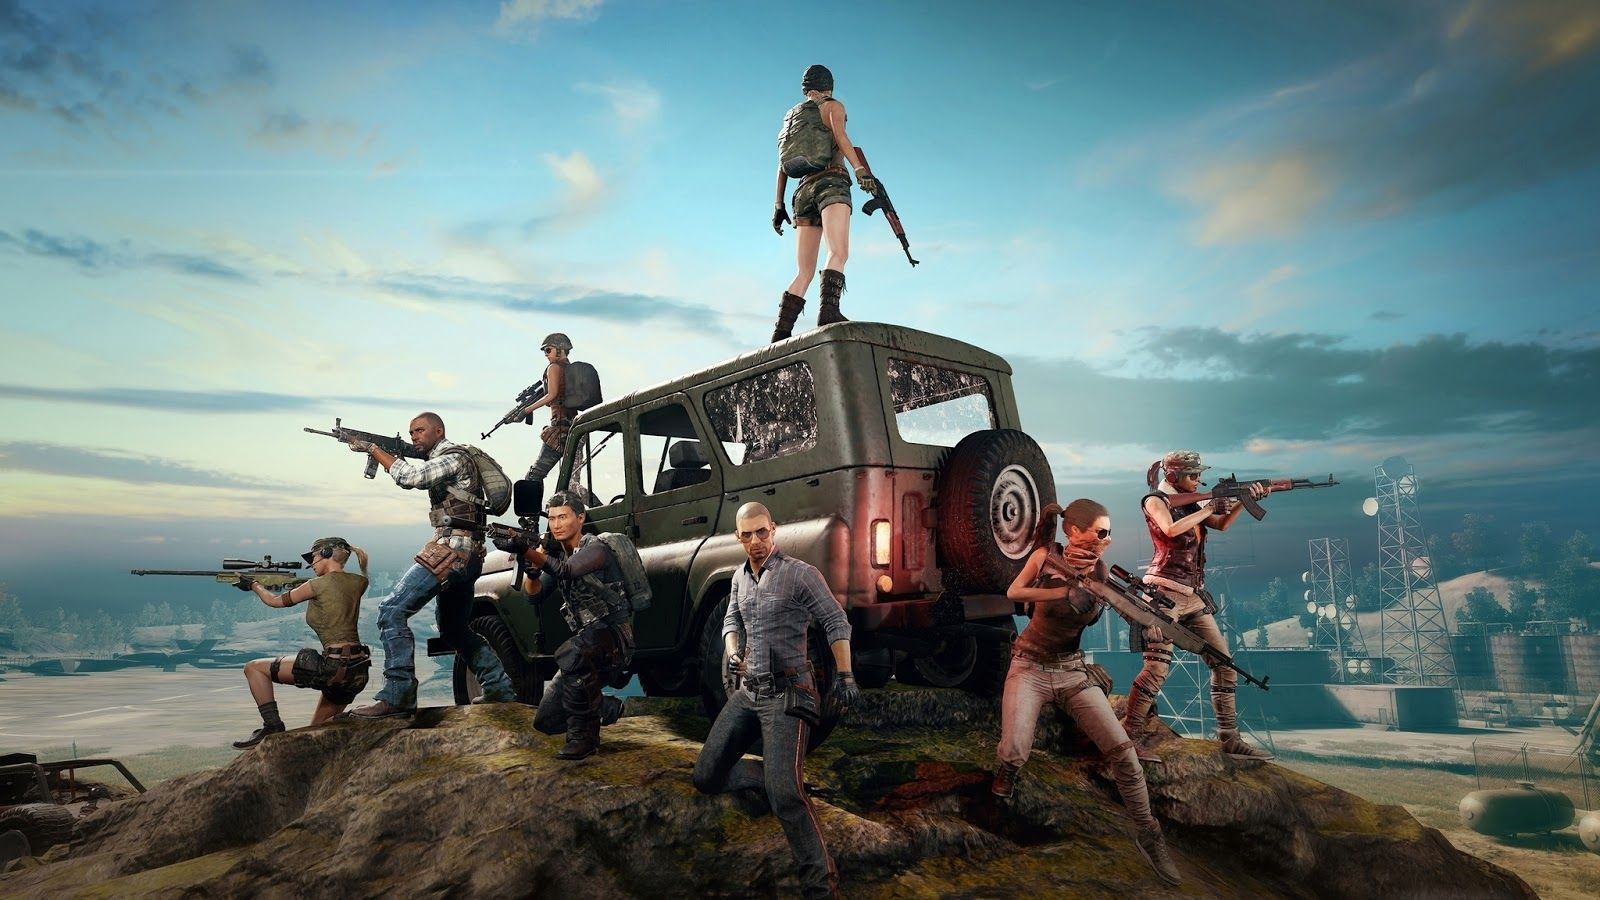 Pubg 4k Ultra Hd Wallpapers For Pc And Mobile The99tricks Best Android Games 4k Wallpapers For Pc Hd Wallpapers For Pc